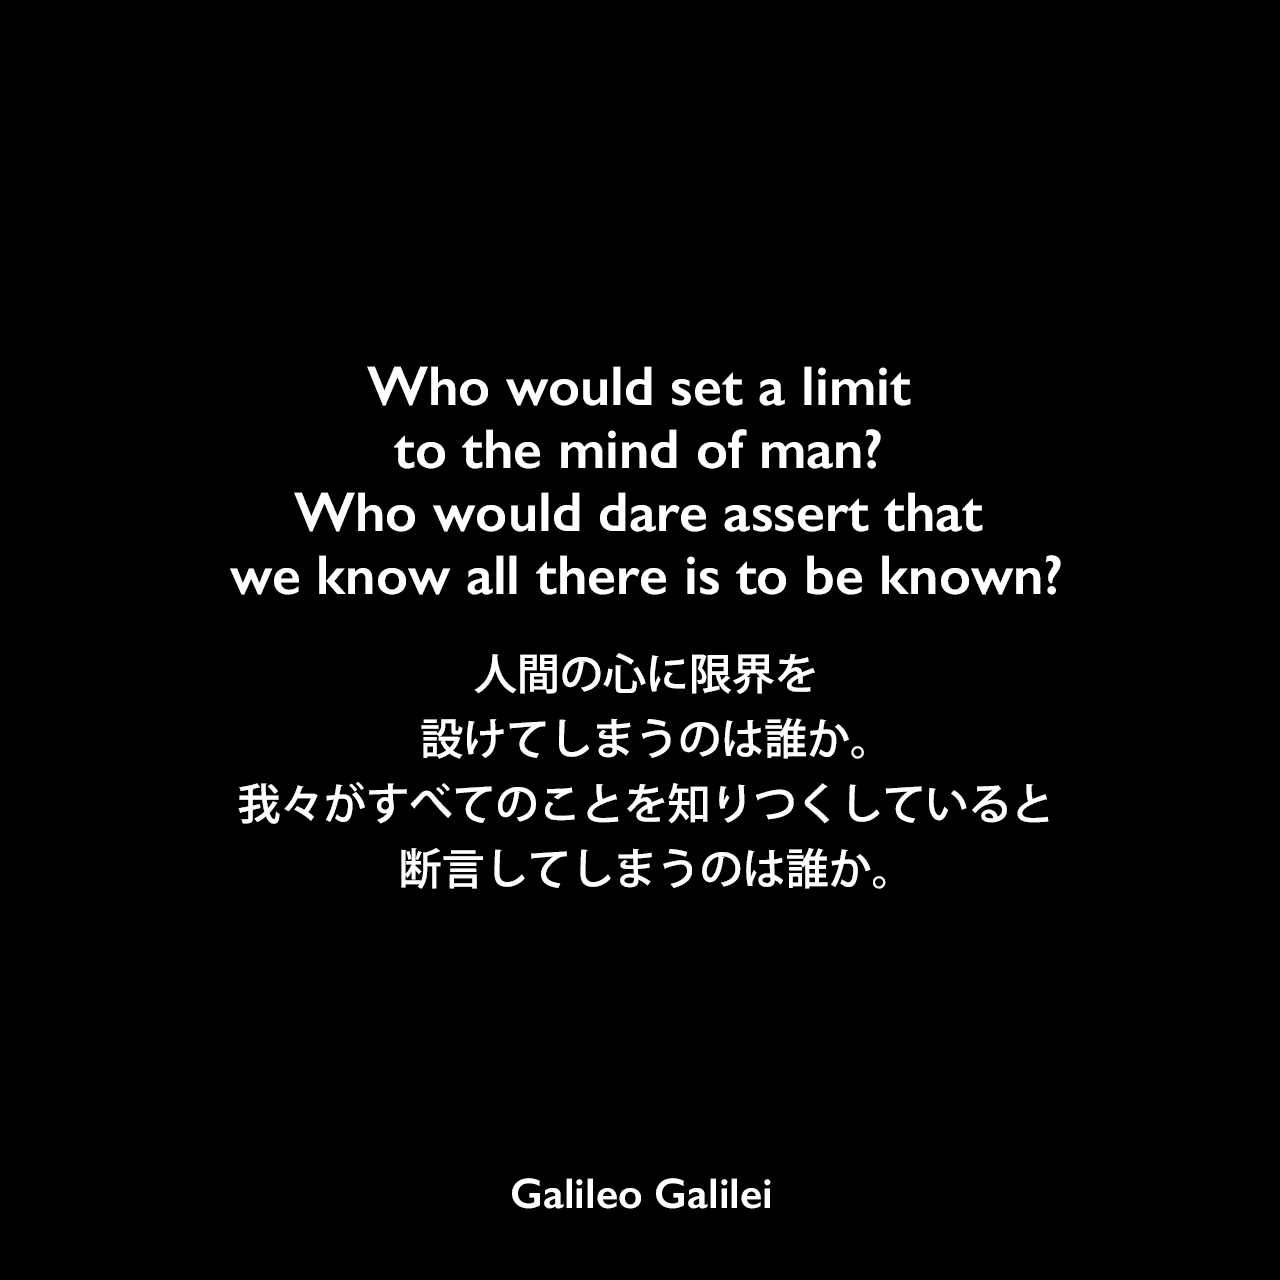 Who would set a limit to the mind of man? Who would dare assert that we know all there is to be known?人間の心に限界を設けてしまうのは誰か。我々がすべてのことを知りつくしていると断言してしまうのは誰か。Galileo Galilei